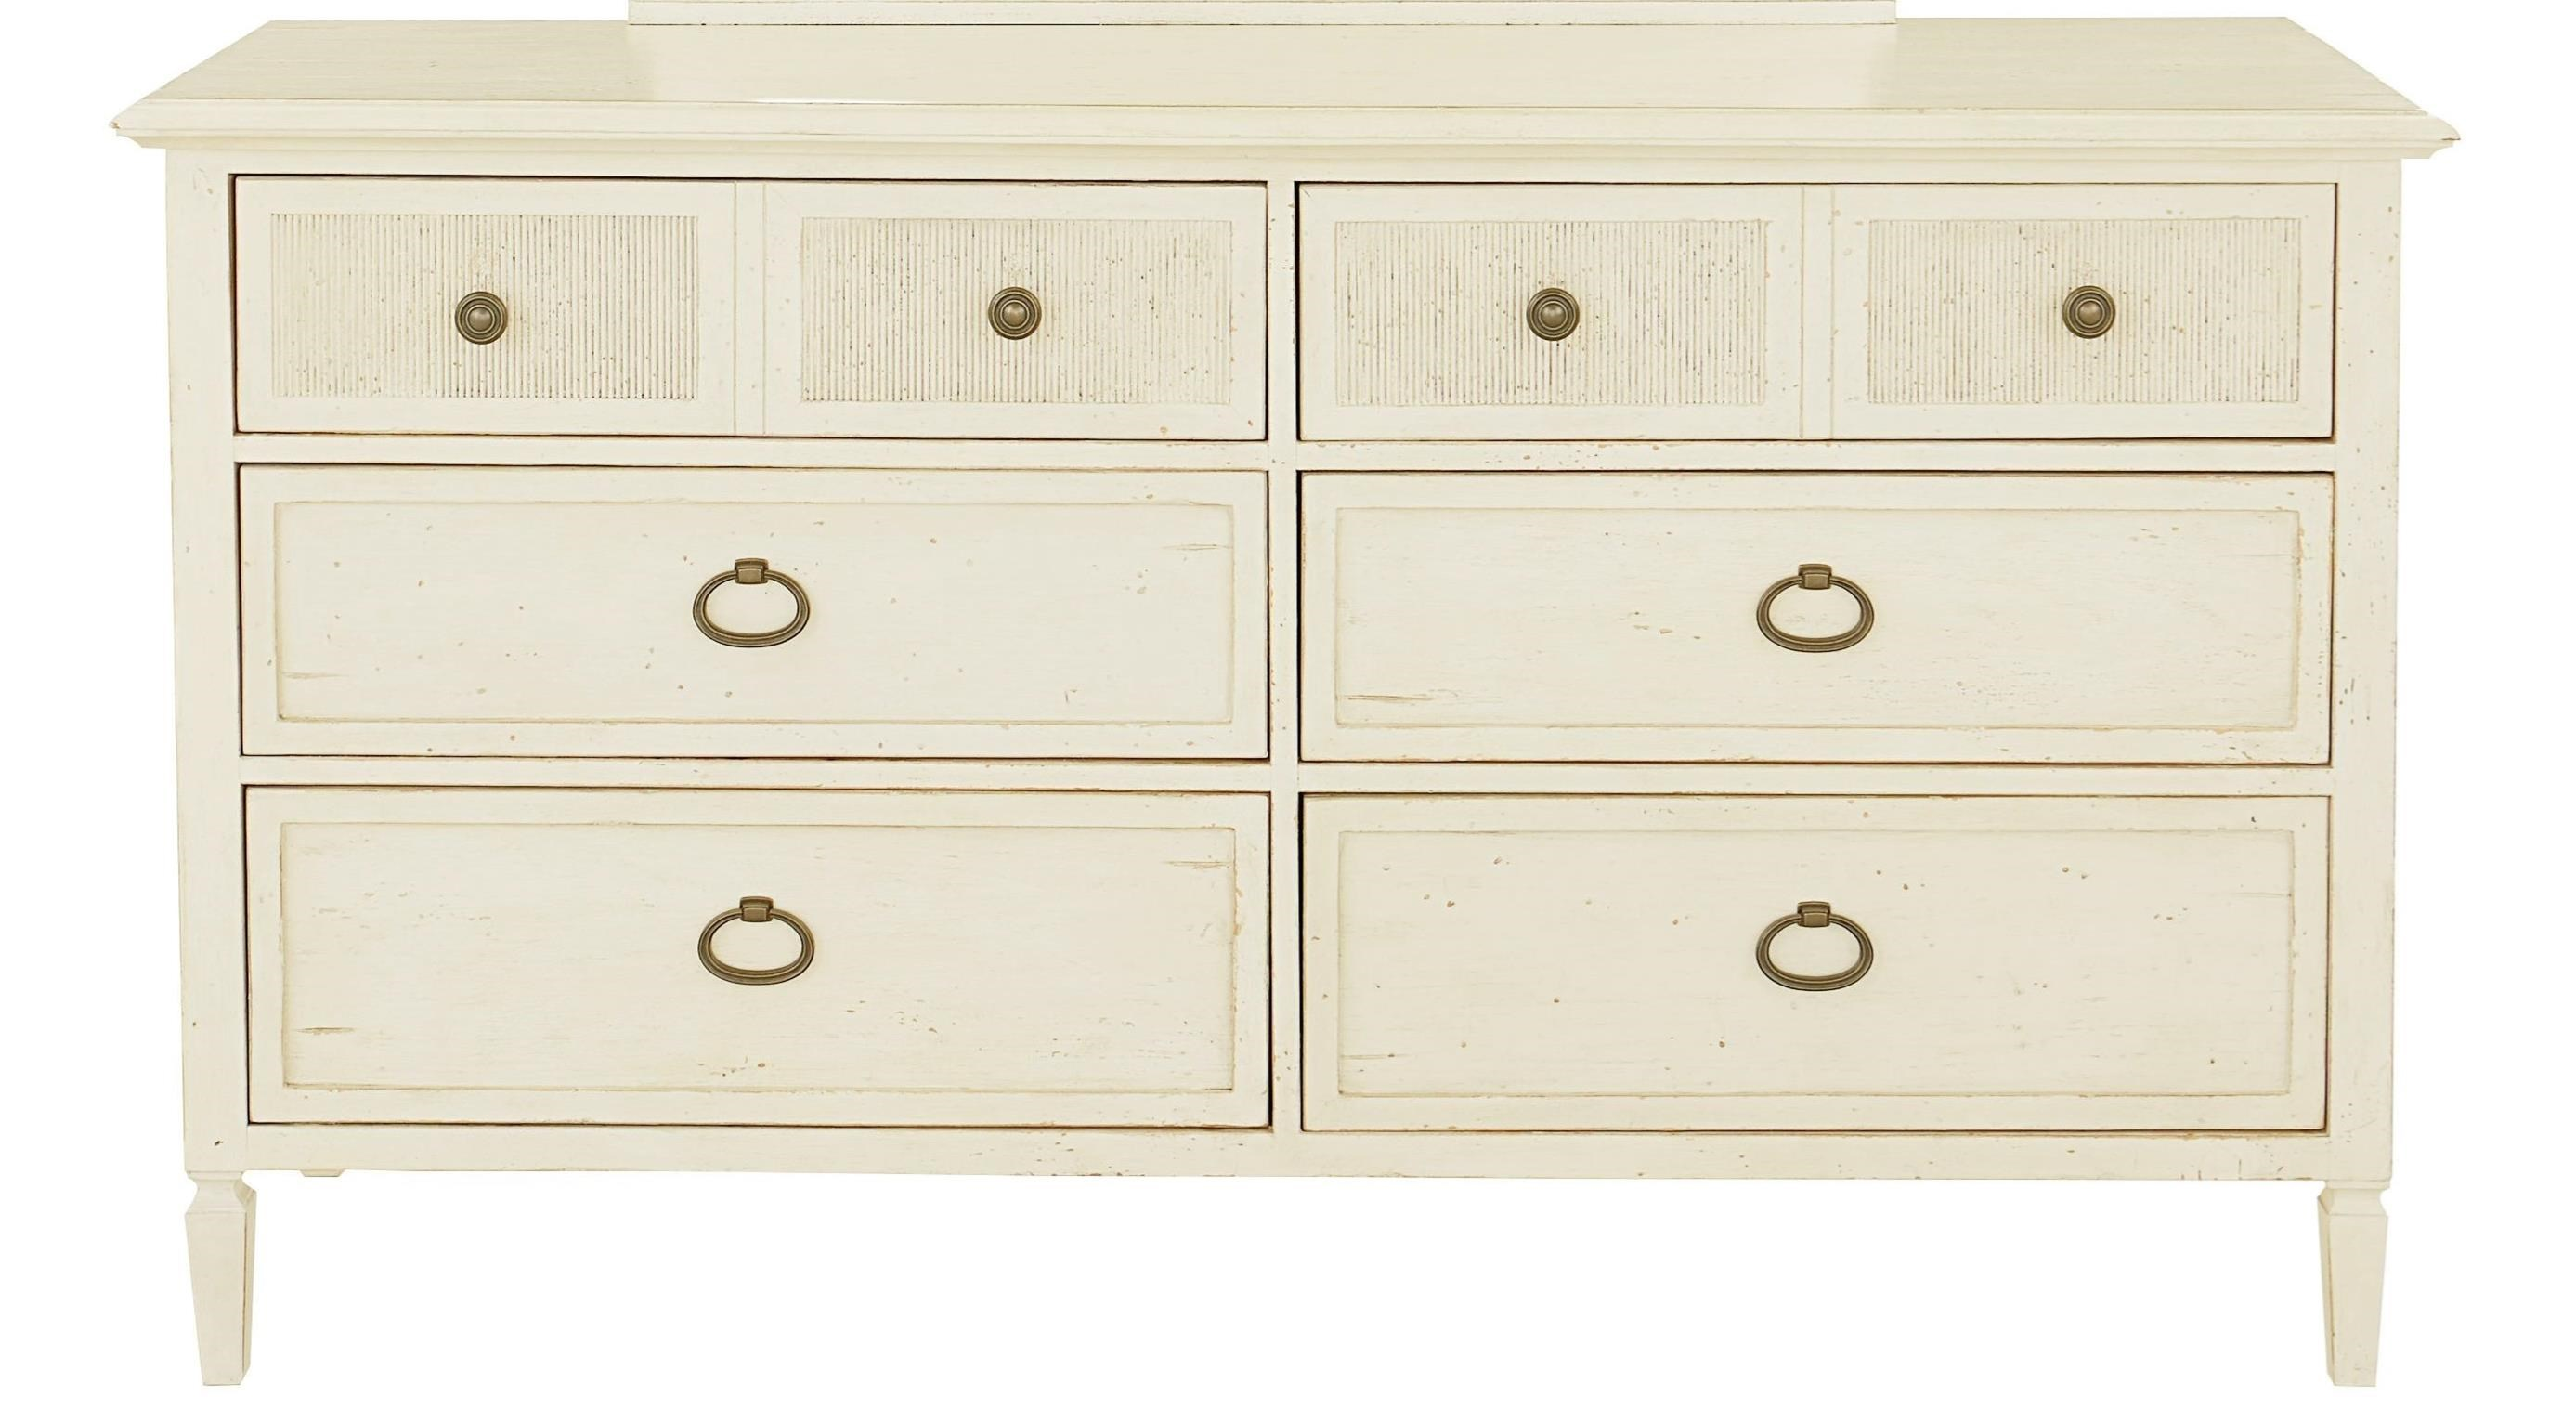 Shoreline Dresser by Bassett at Suburban Furniture